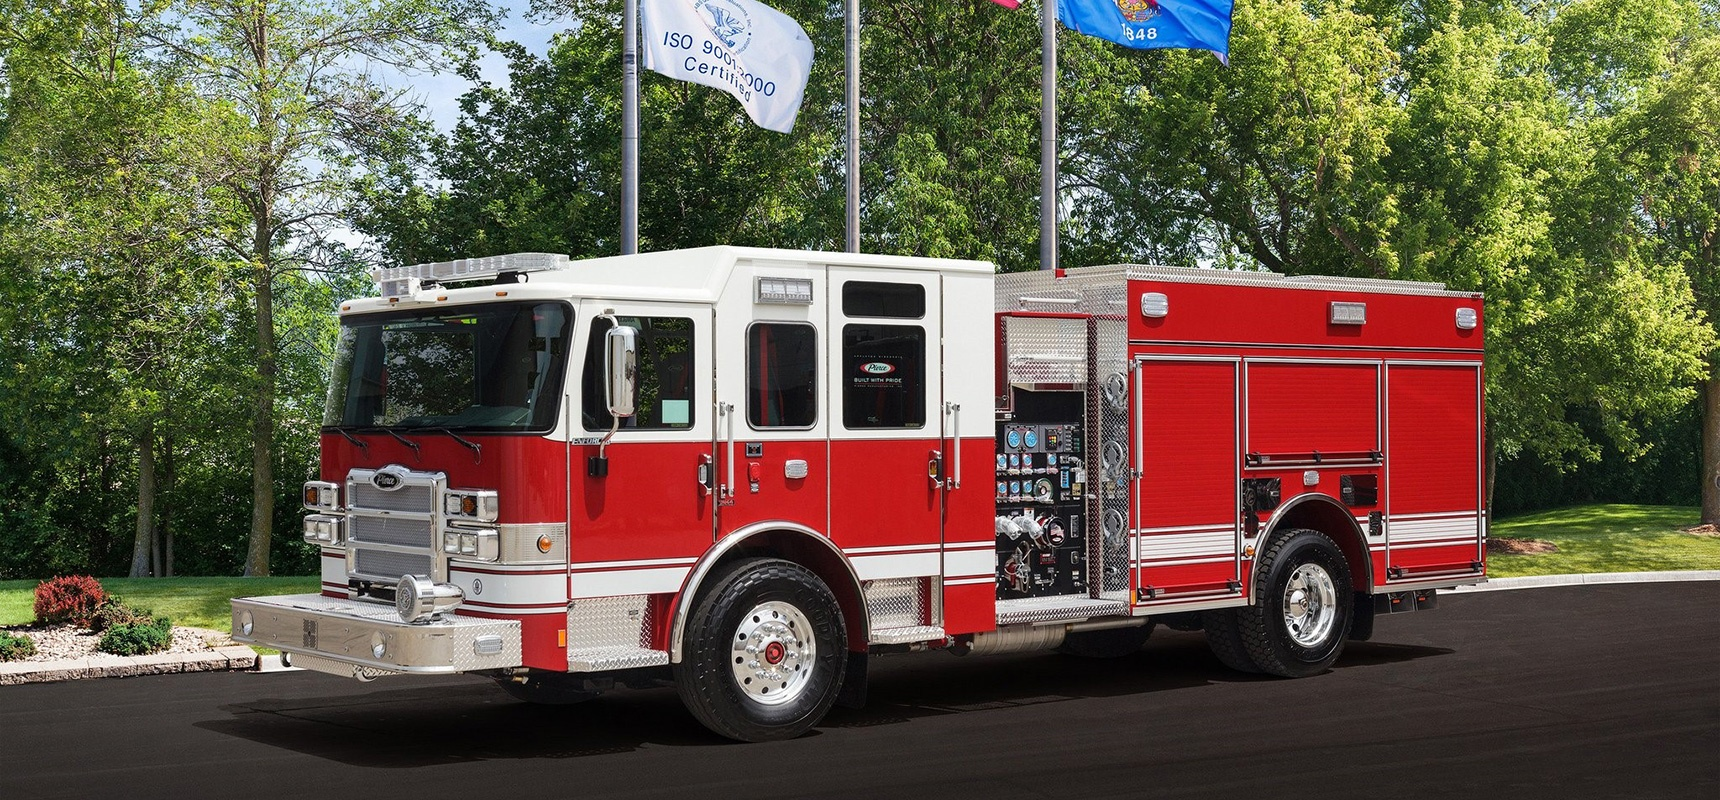 South-Carolina-Horry-County-Fire-Rescue-Purchases-Nine-Pierce-Enforcer-Apparatus_Header.jpg